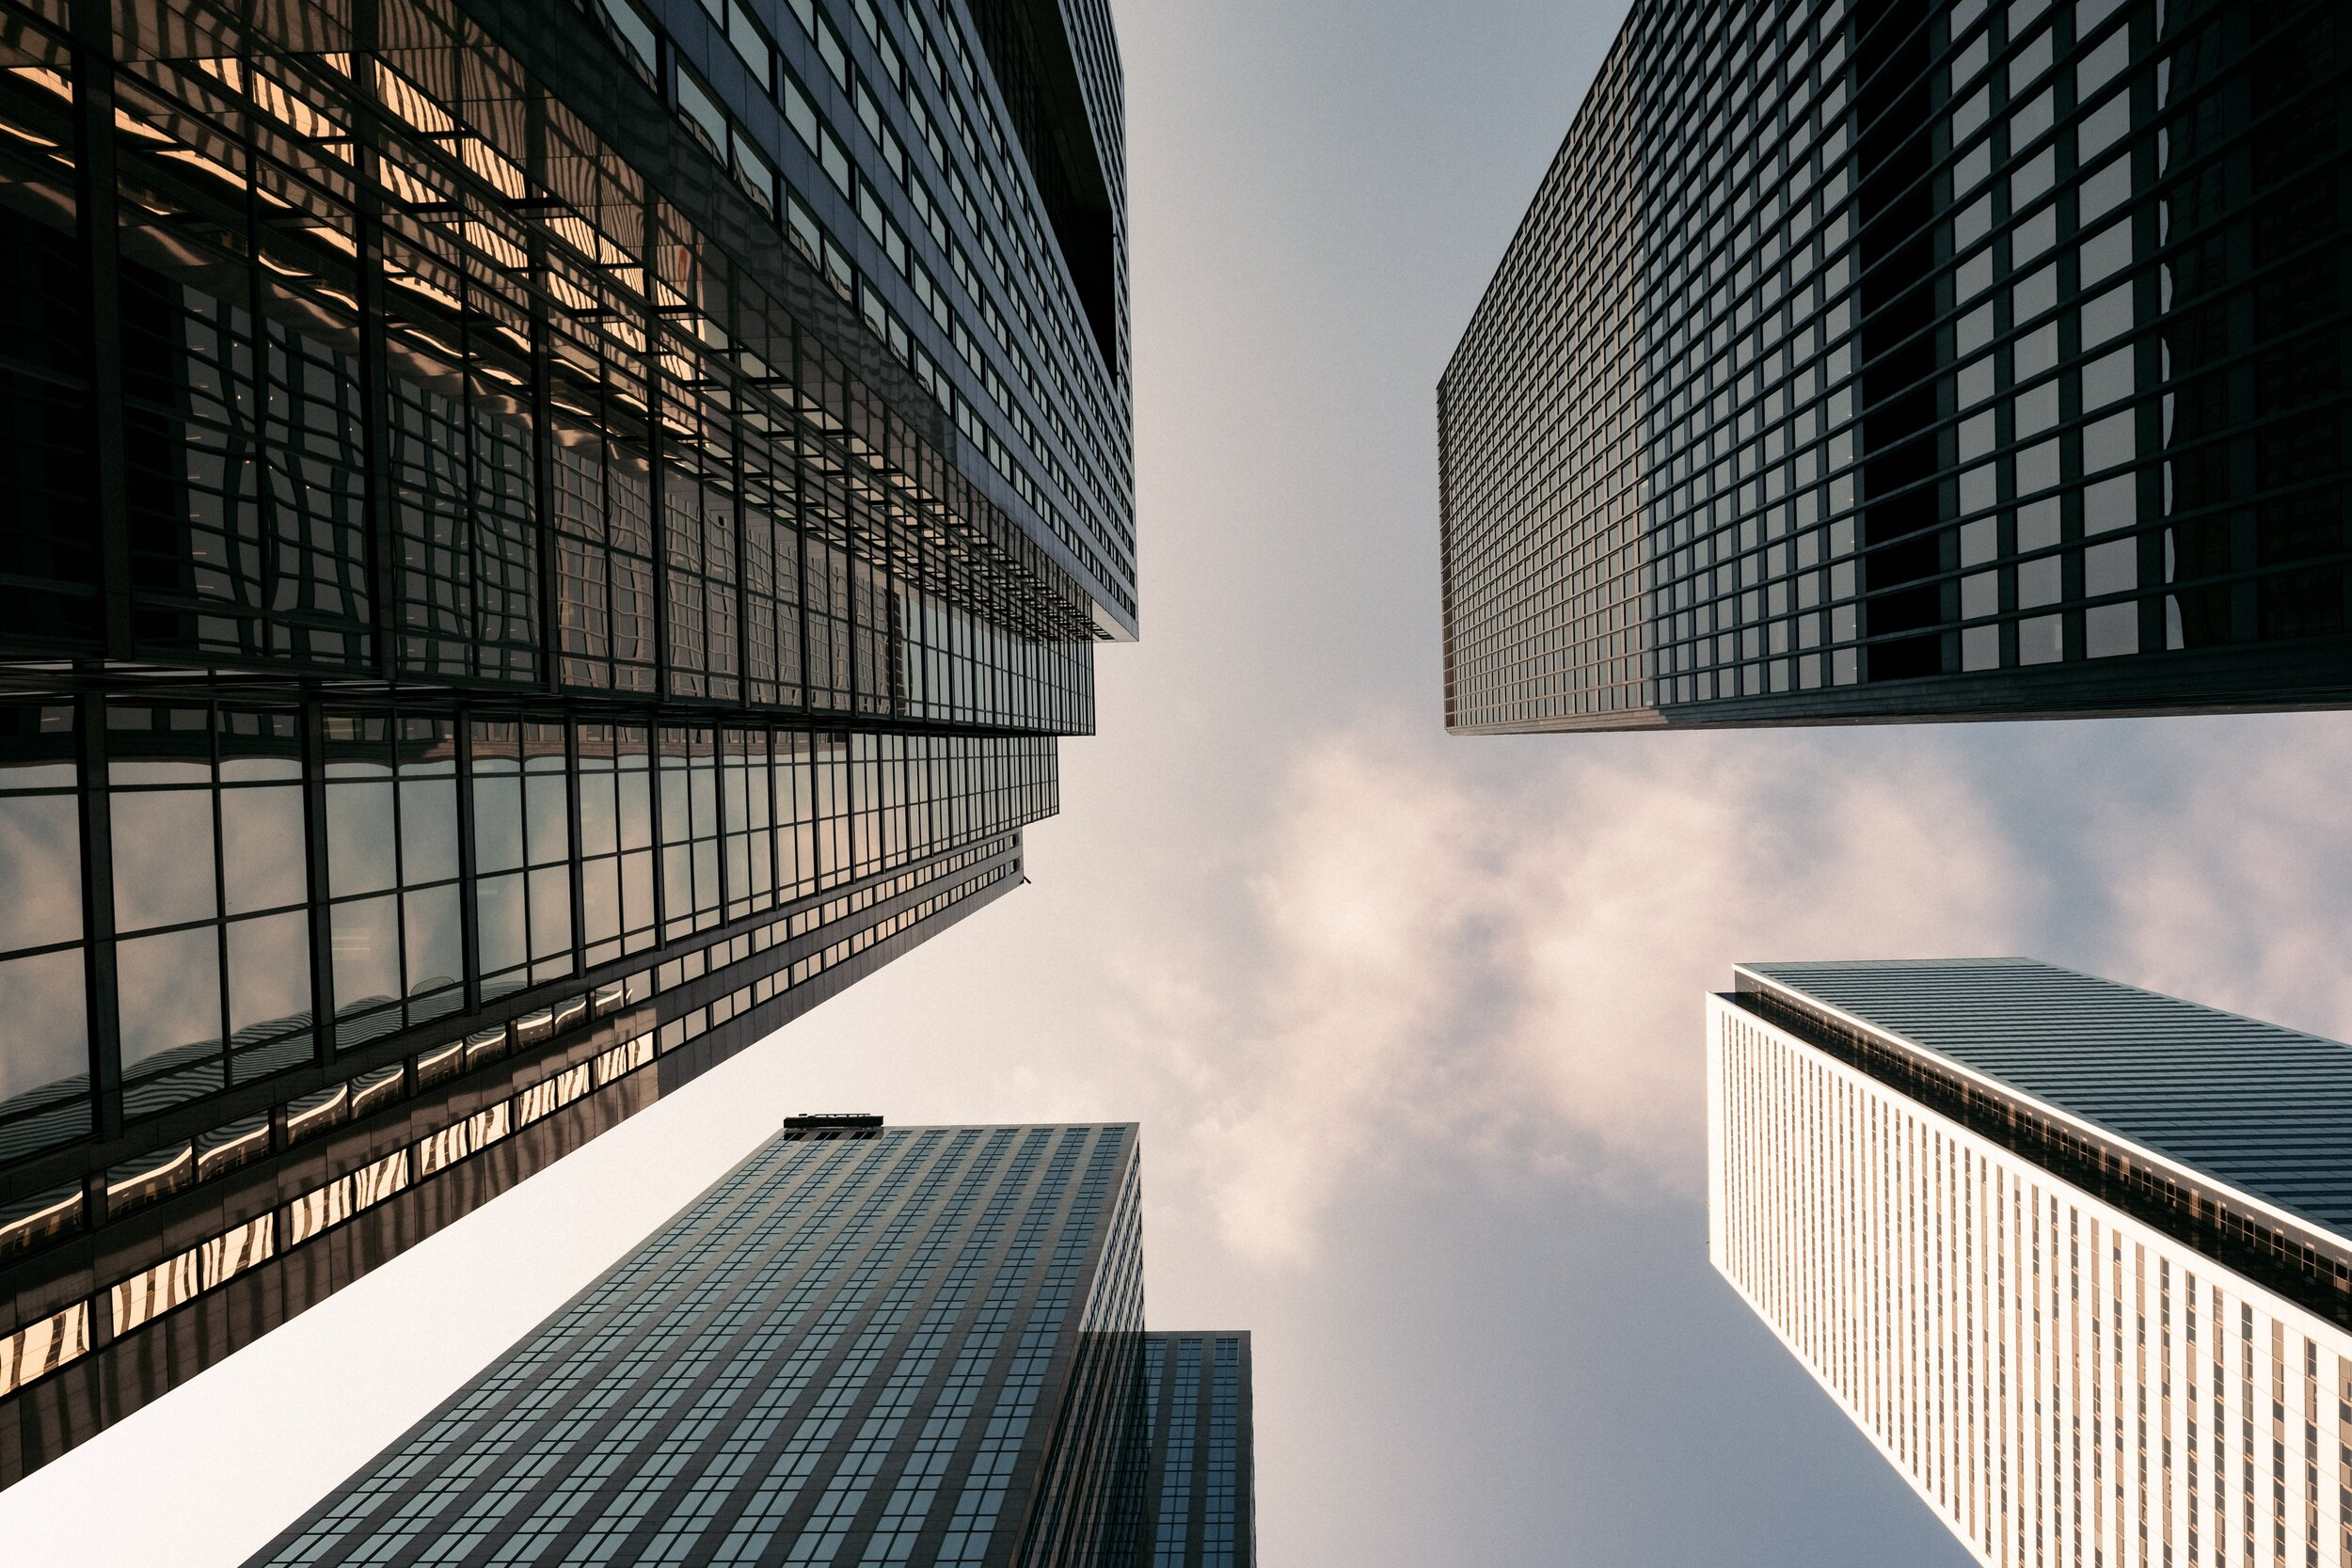 four-buildings-from-below-small-clouds.jpg